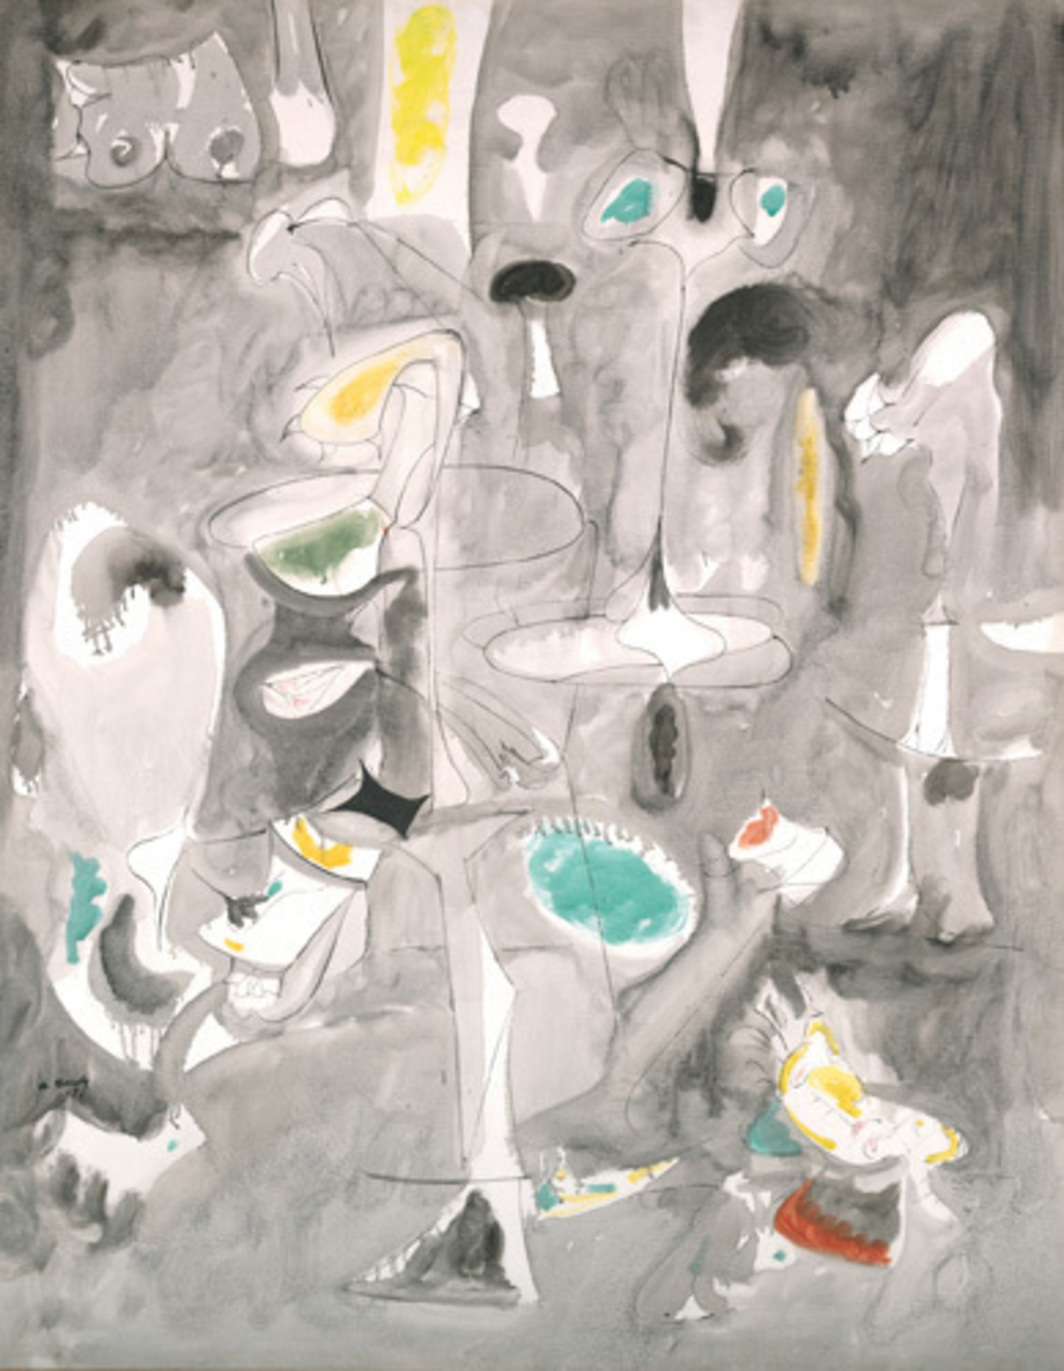 "Arshile Gorky, The Betrothal, 1947, oil on canvas, 50 5/8 x 39 1/4"". © 2009 Estate of Arshile Gorky/Artists Rights Society (ARS), New York."